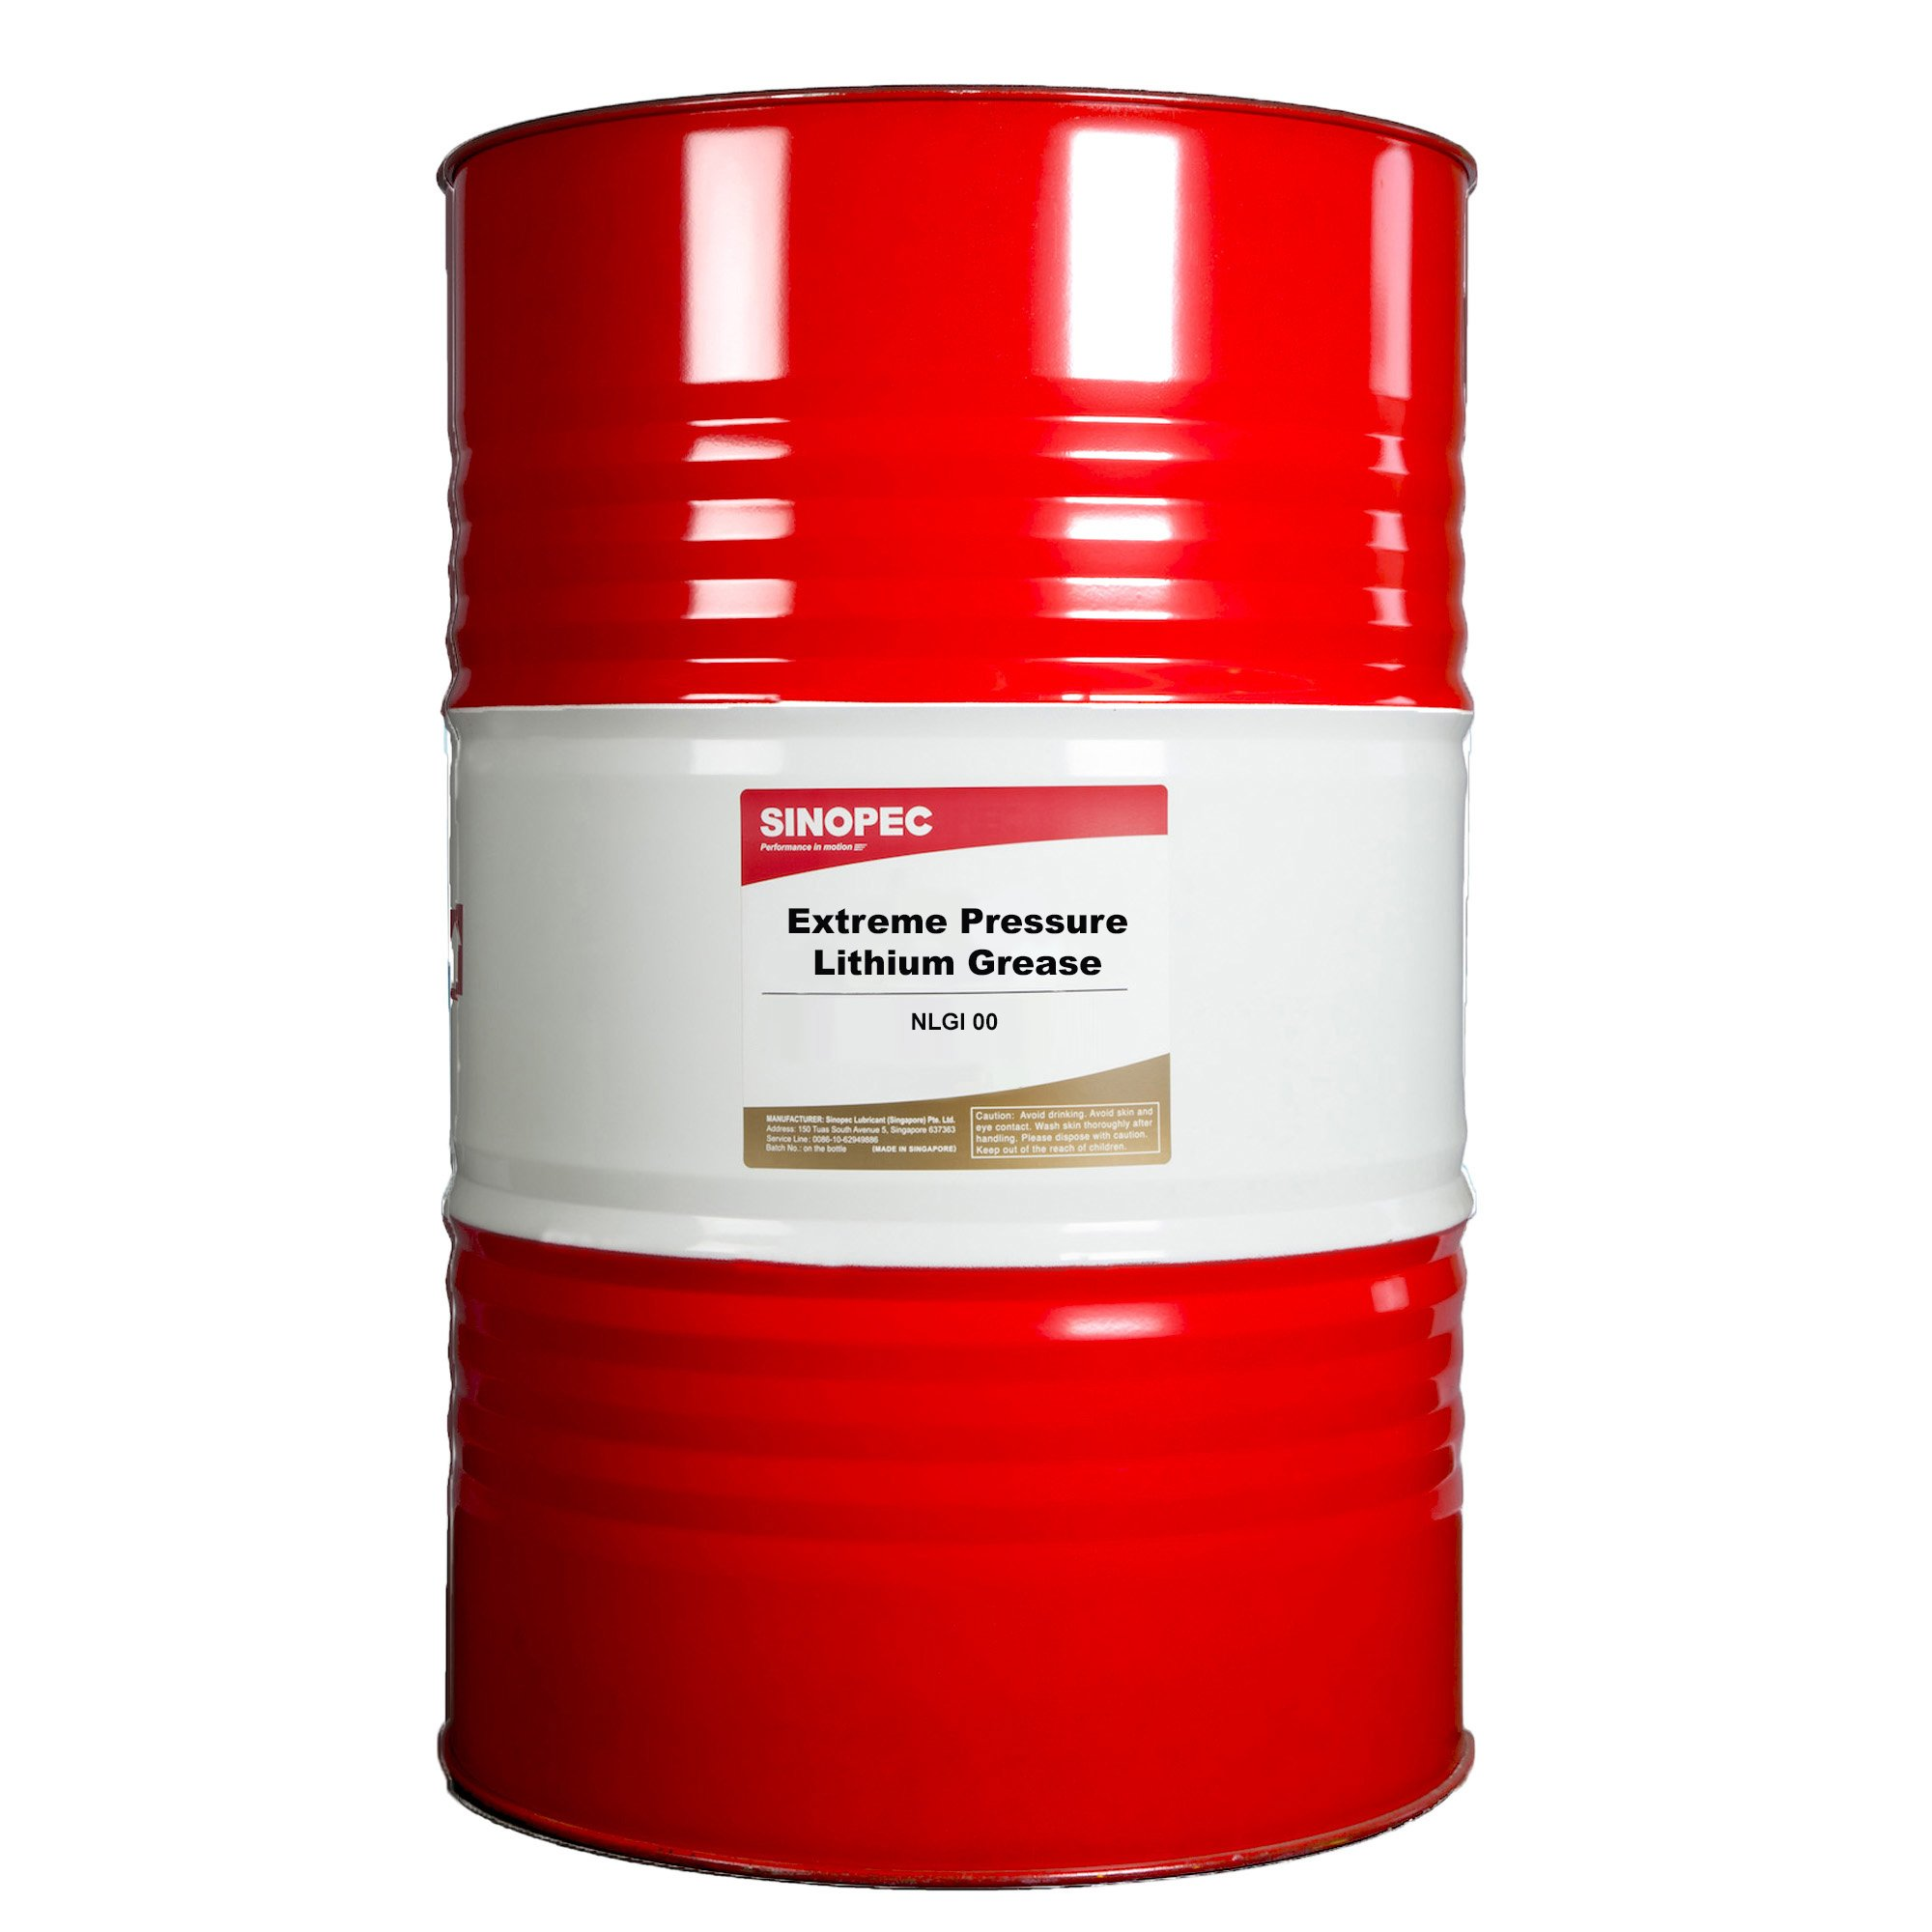 Sinopec EP00 Extreme Pressure Lithium Grease Drum, 400 lb. by Sinopec